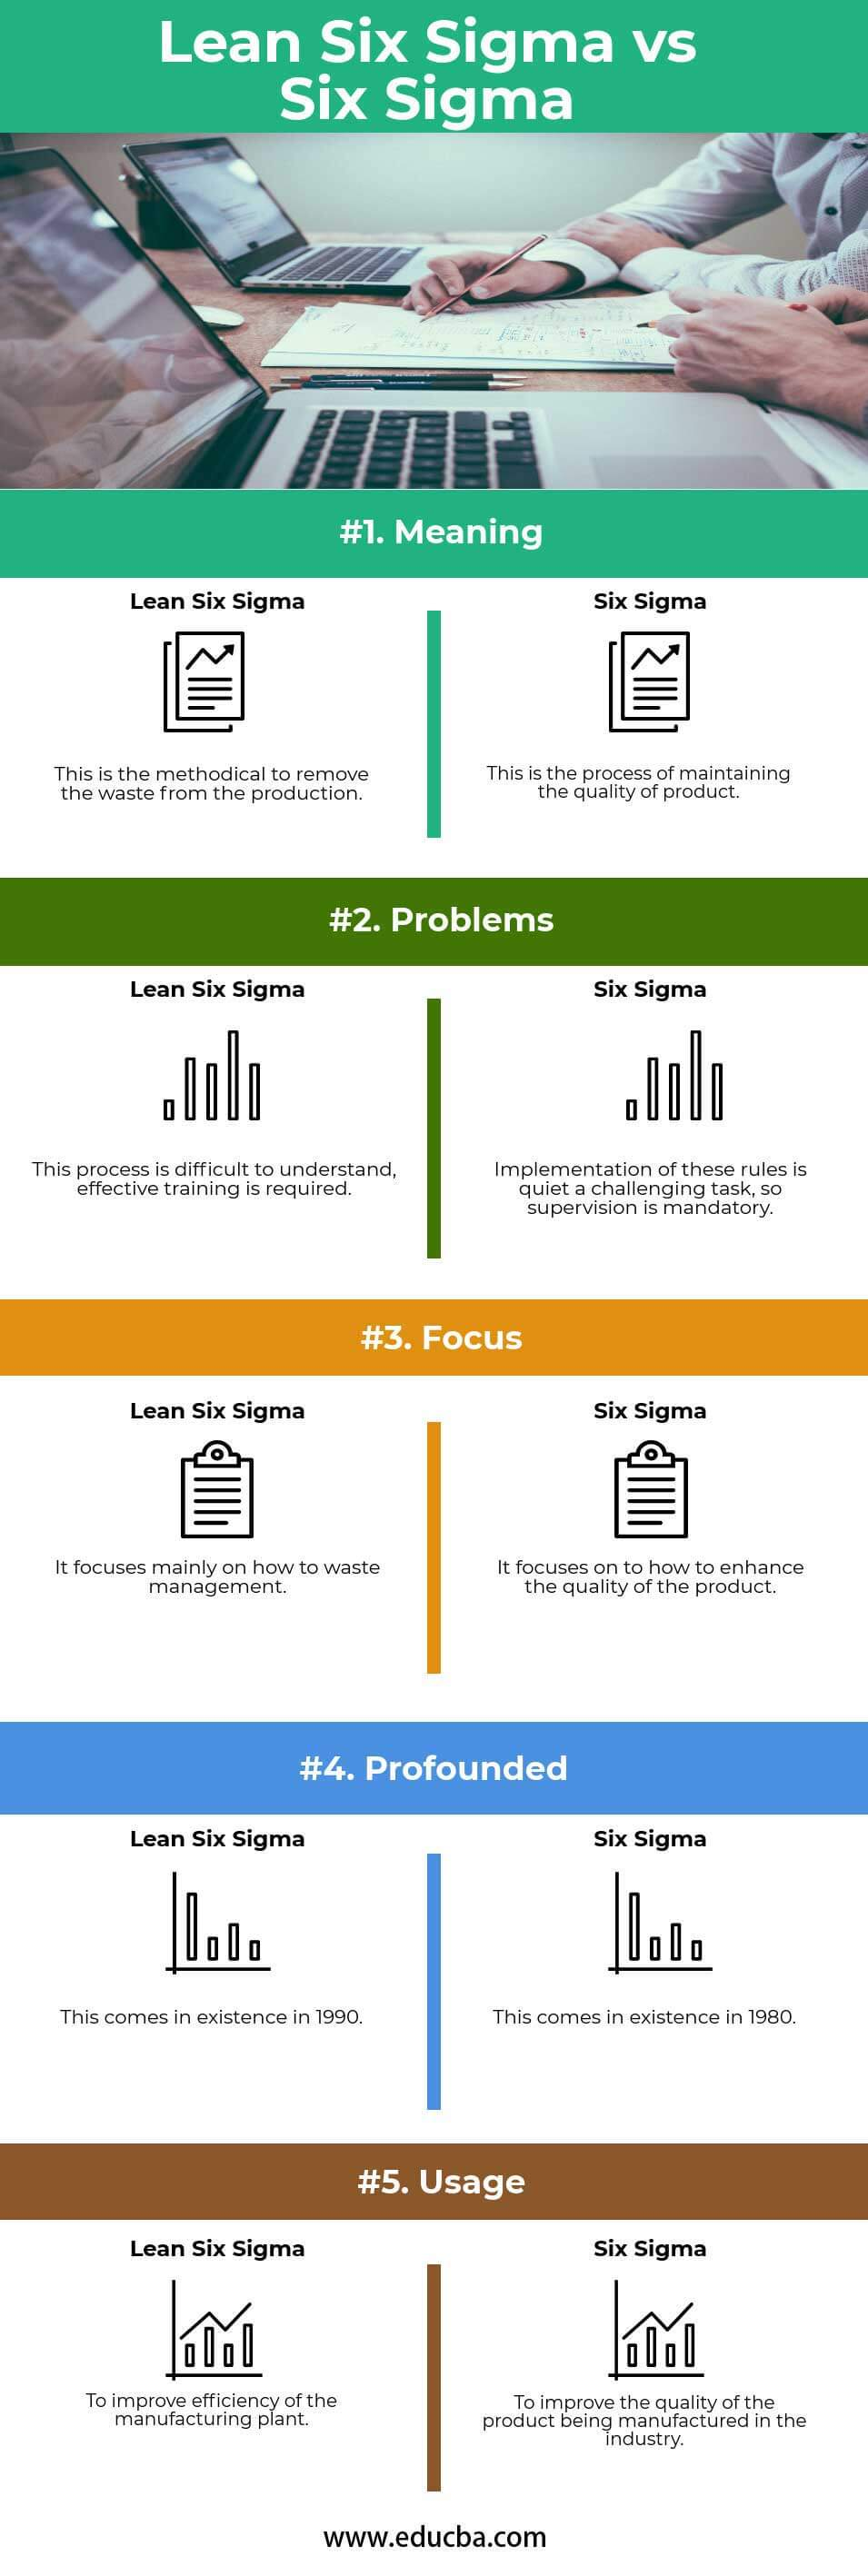 Lean Six Sigma vs Six Sigma info